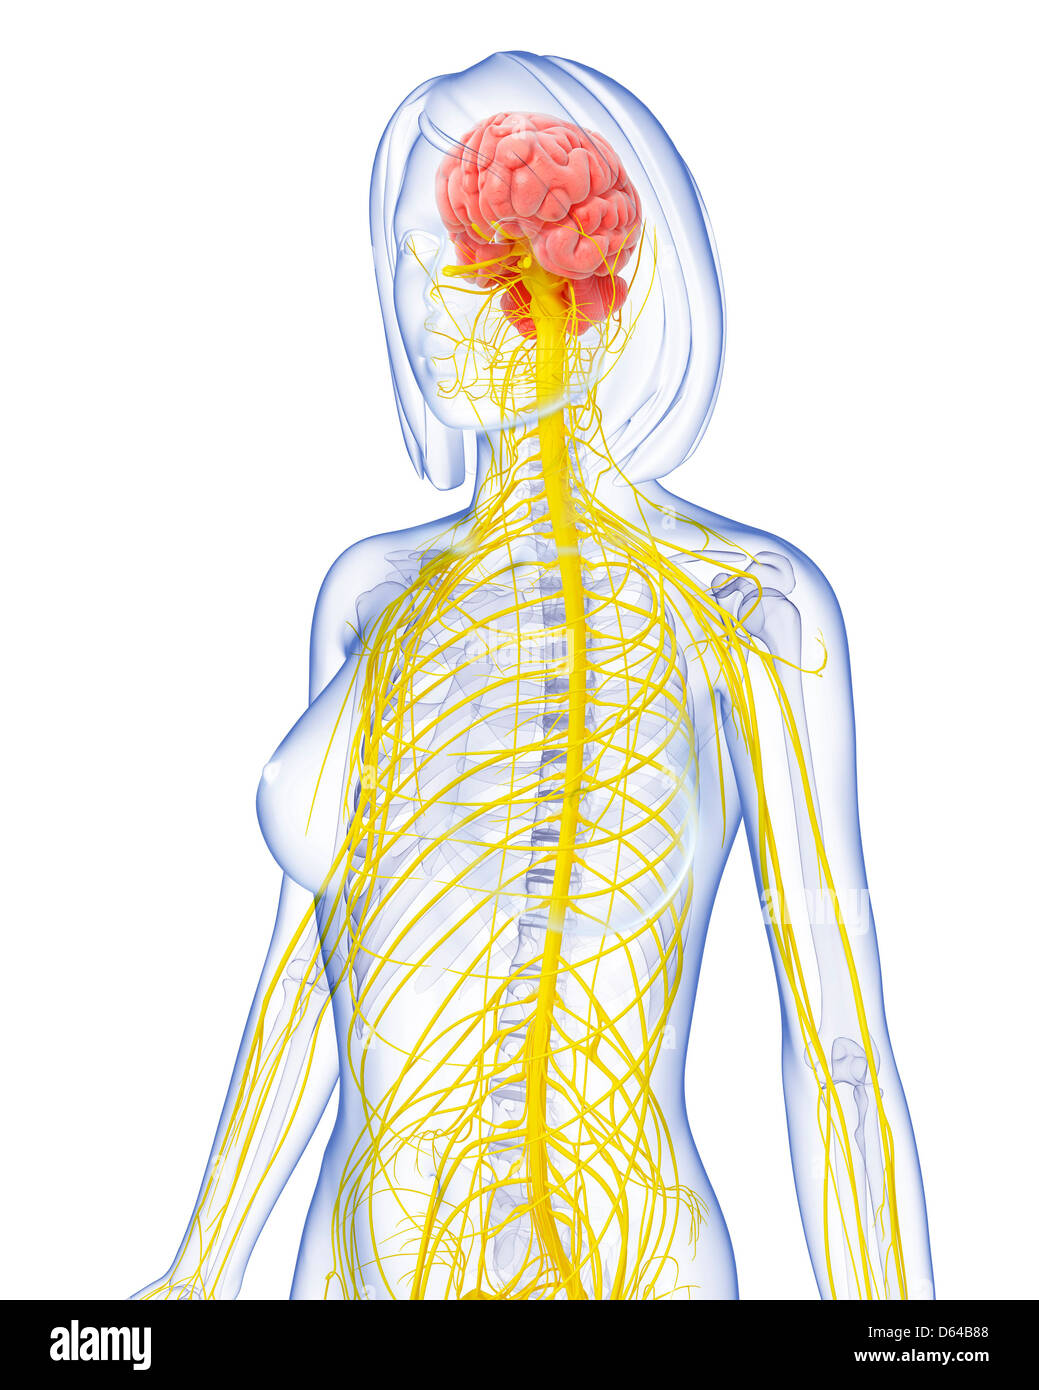 Female nervous system artwork stock photo royalty free image female nervous system artwork ccuart Choice Image